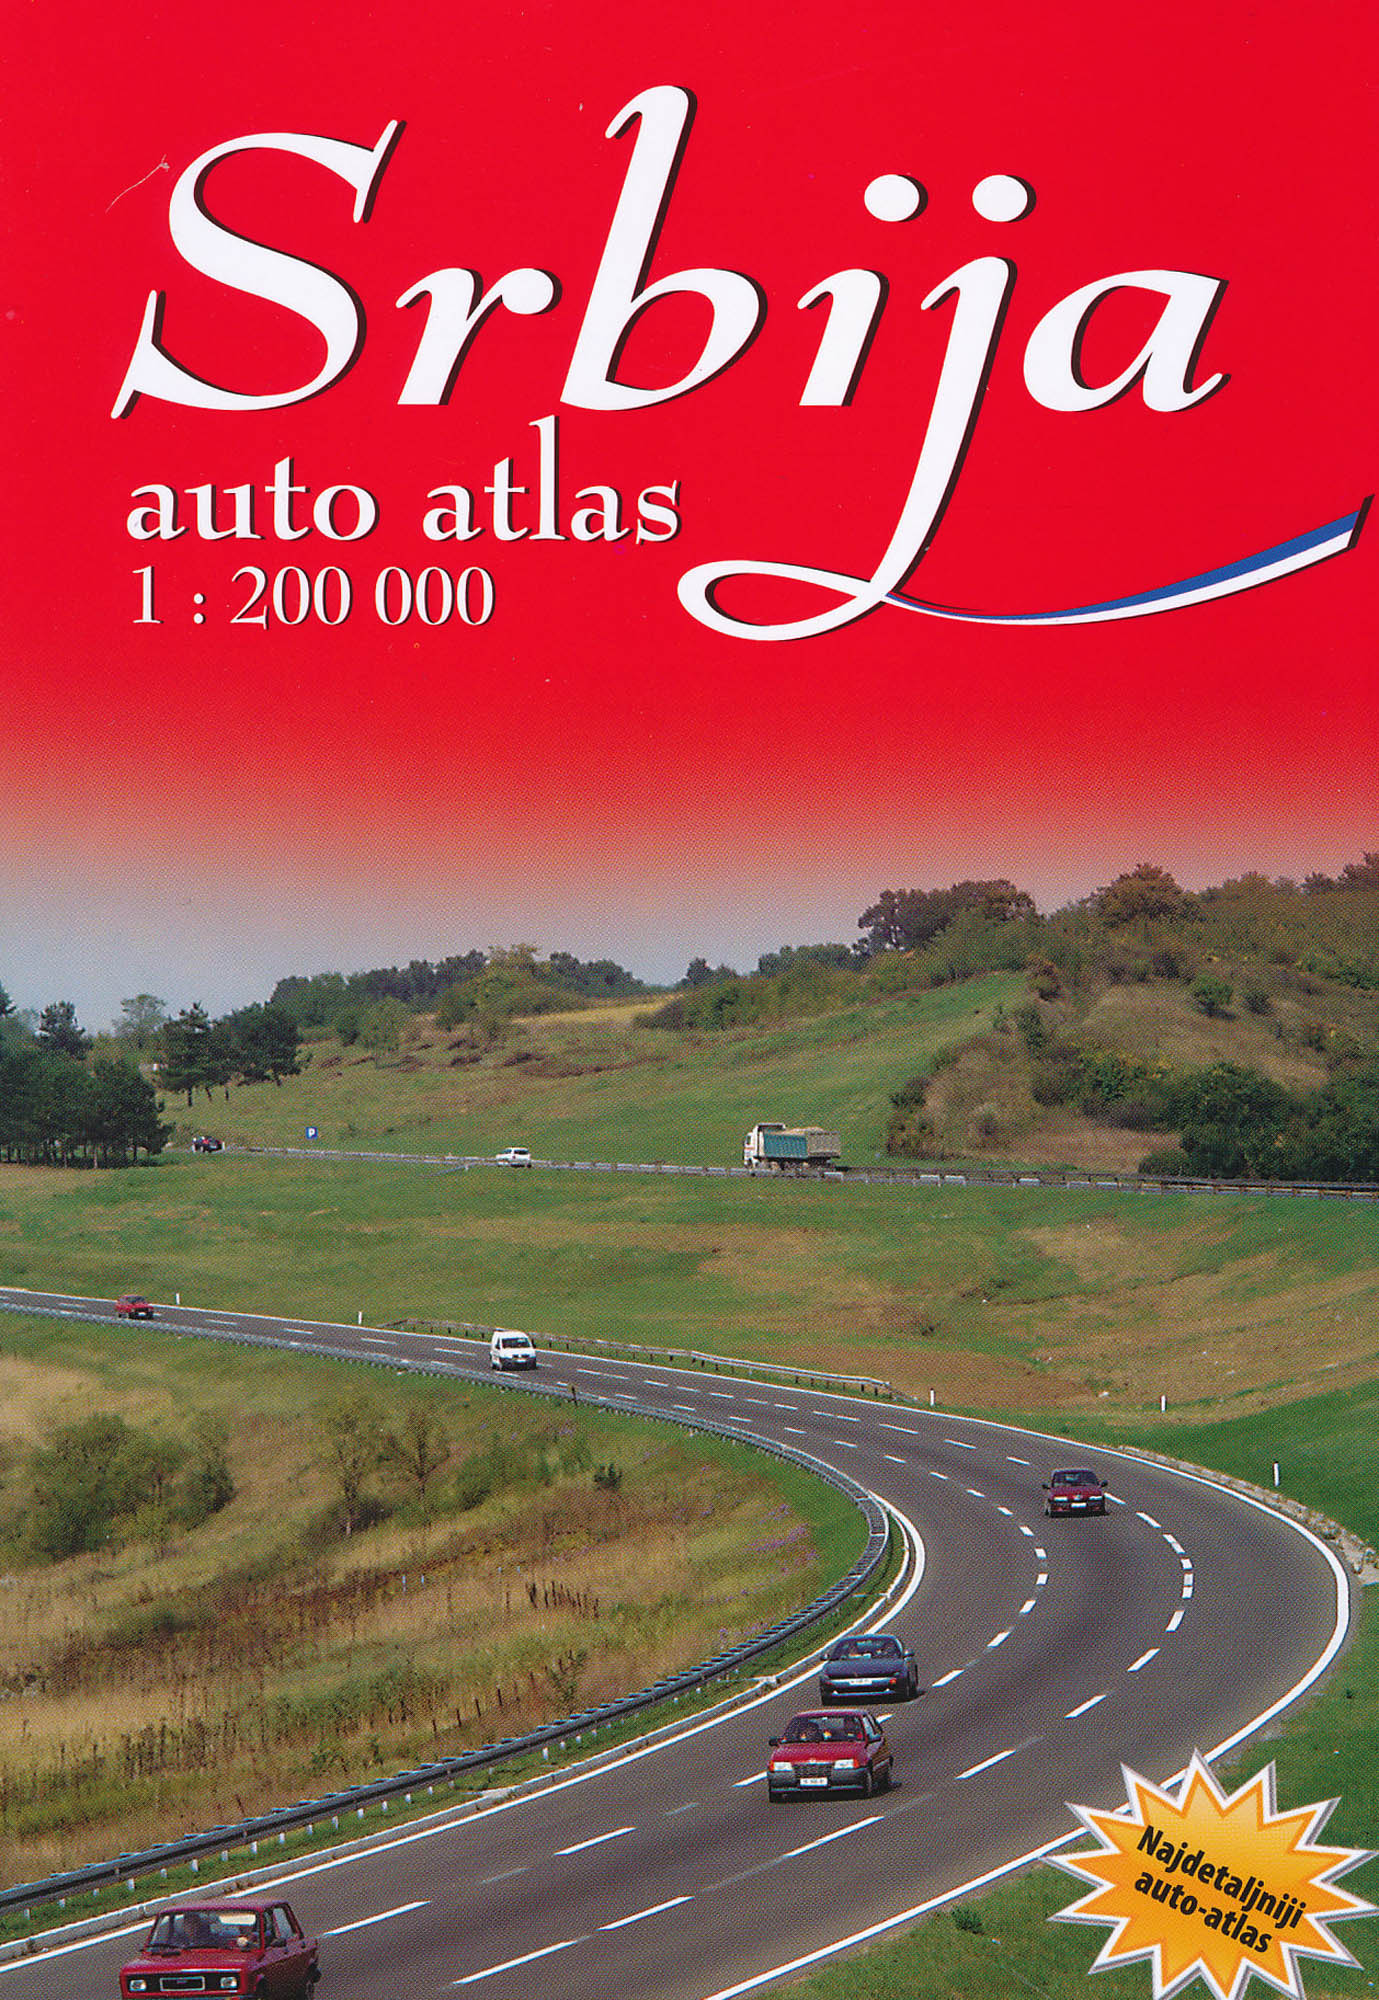 Srbsko autoatlas 1:200.000 IS